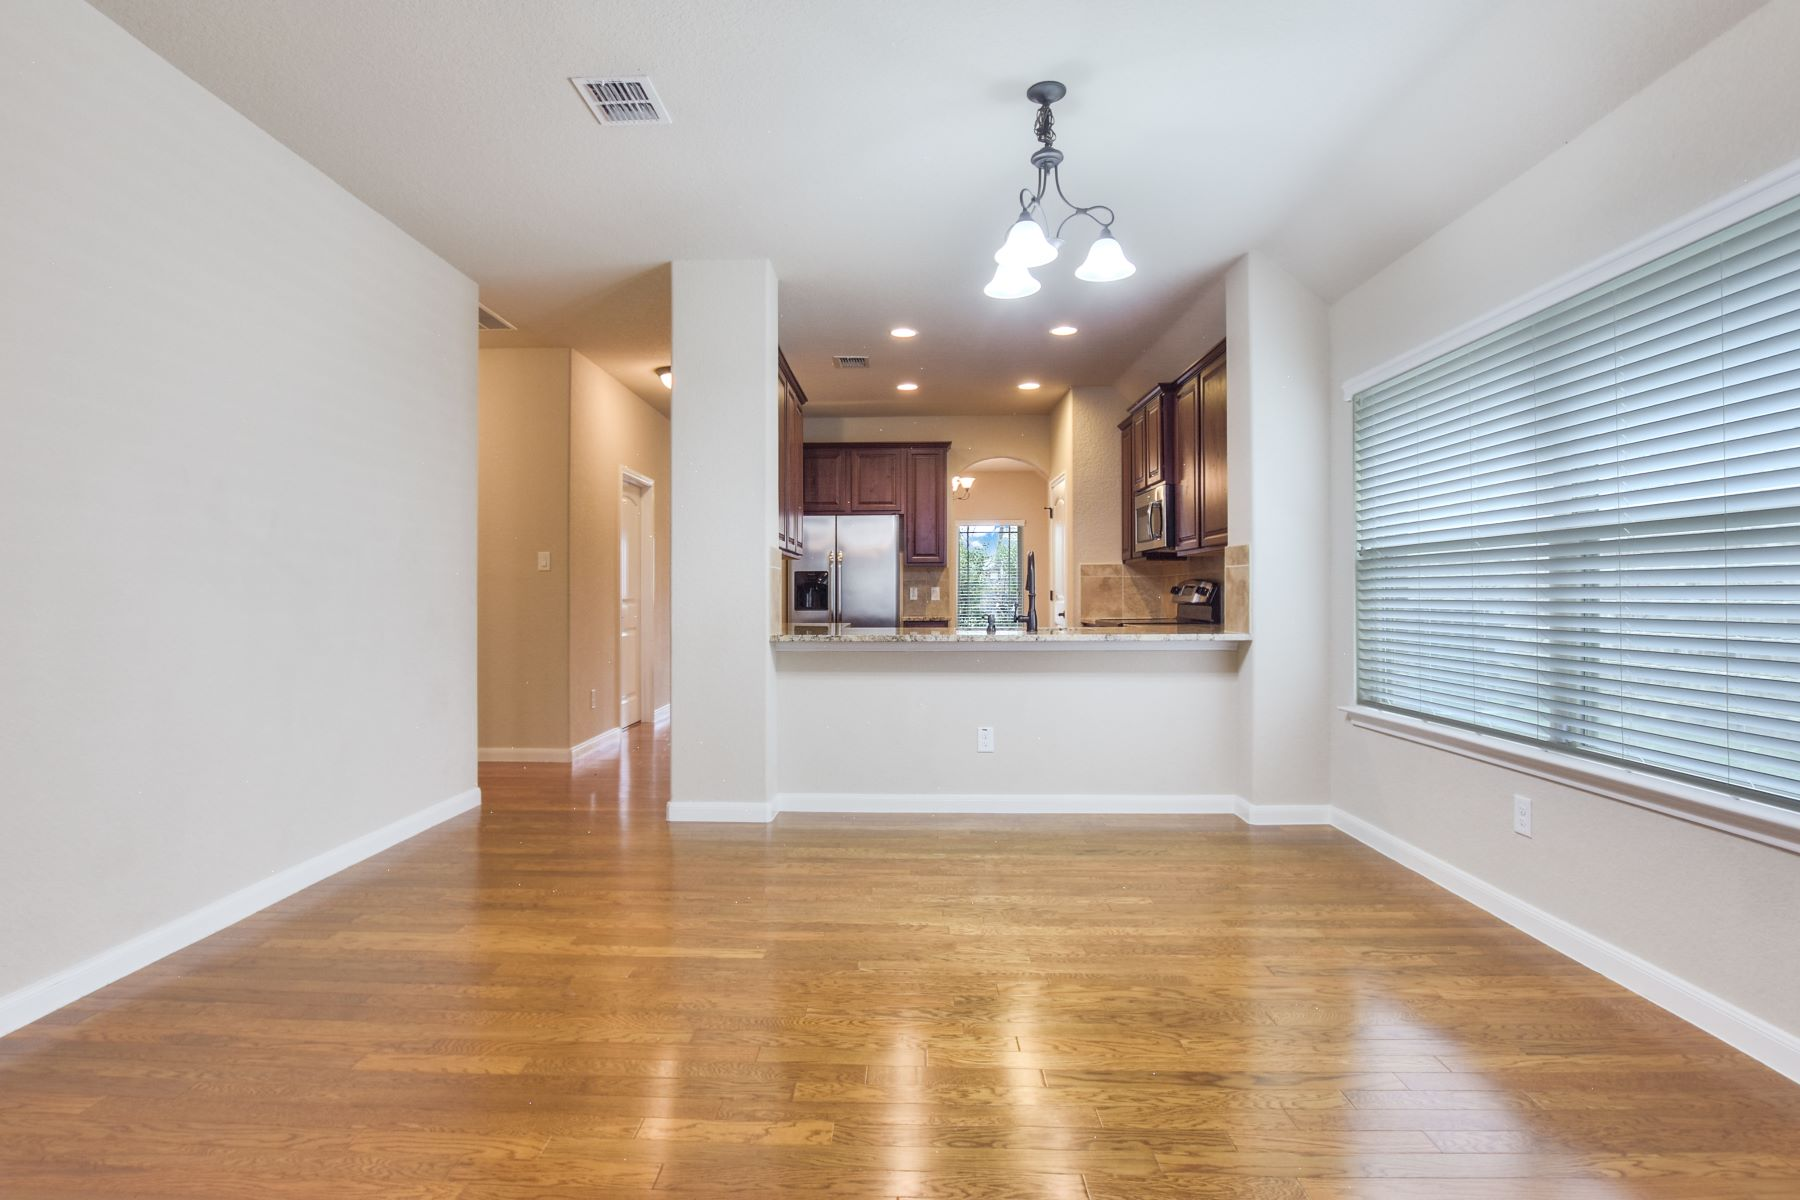 Additional photo for property listing at Stunning Home in Boerne 105 Santa Anita Road Boerne, Texas 78006 United States